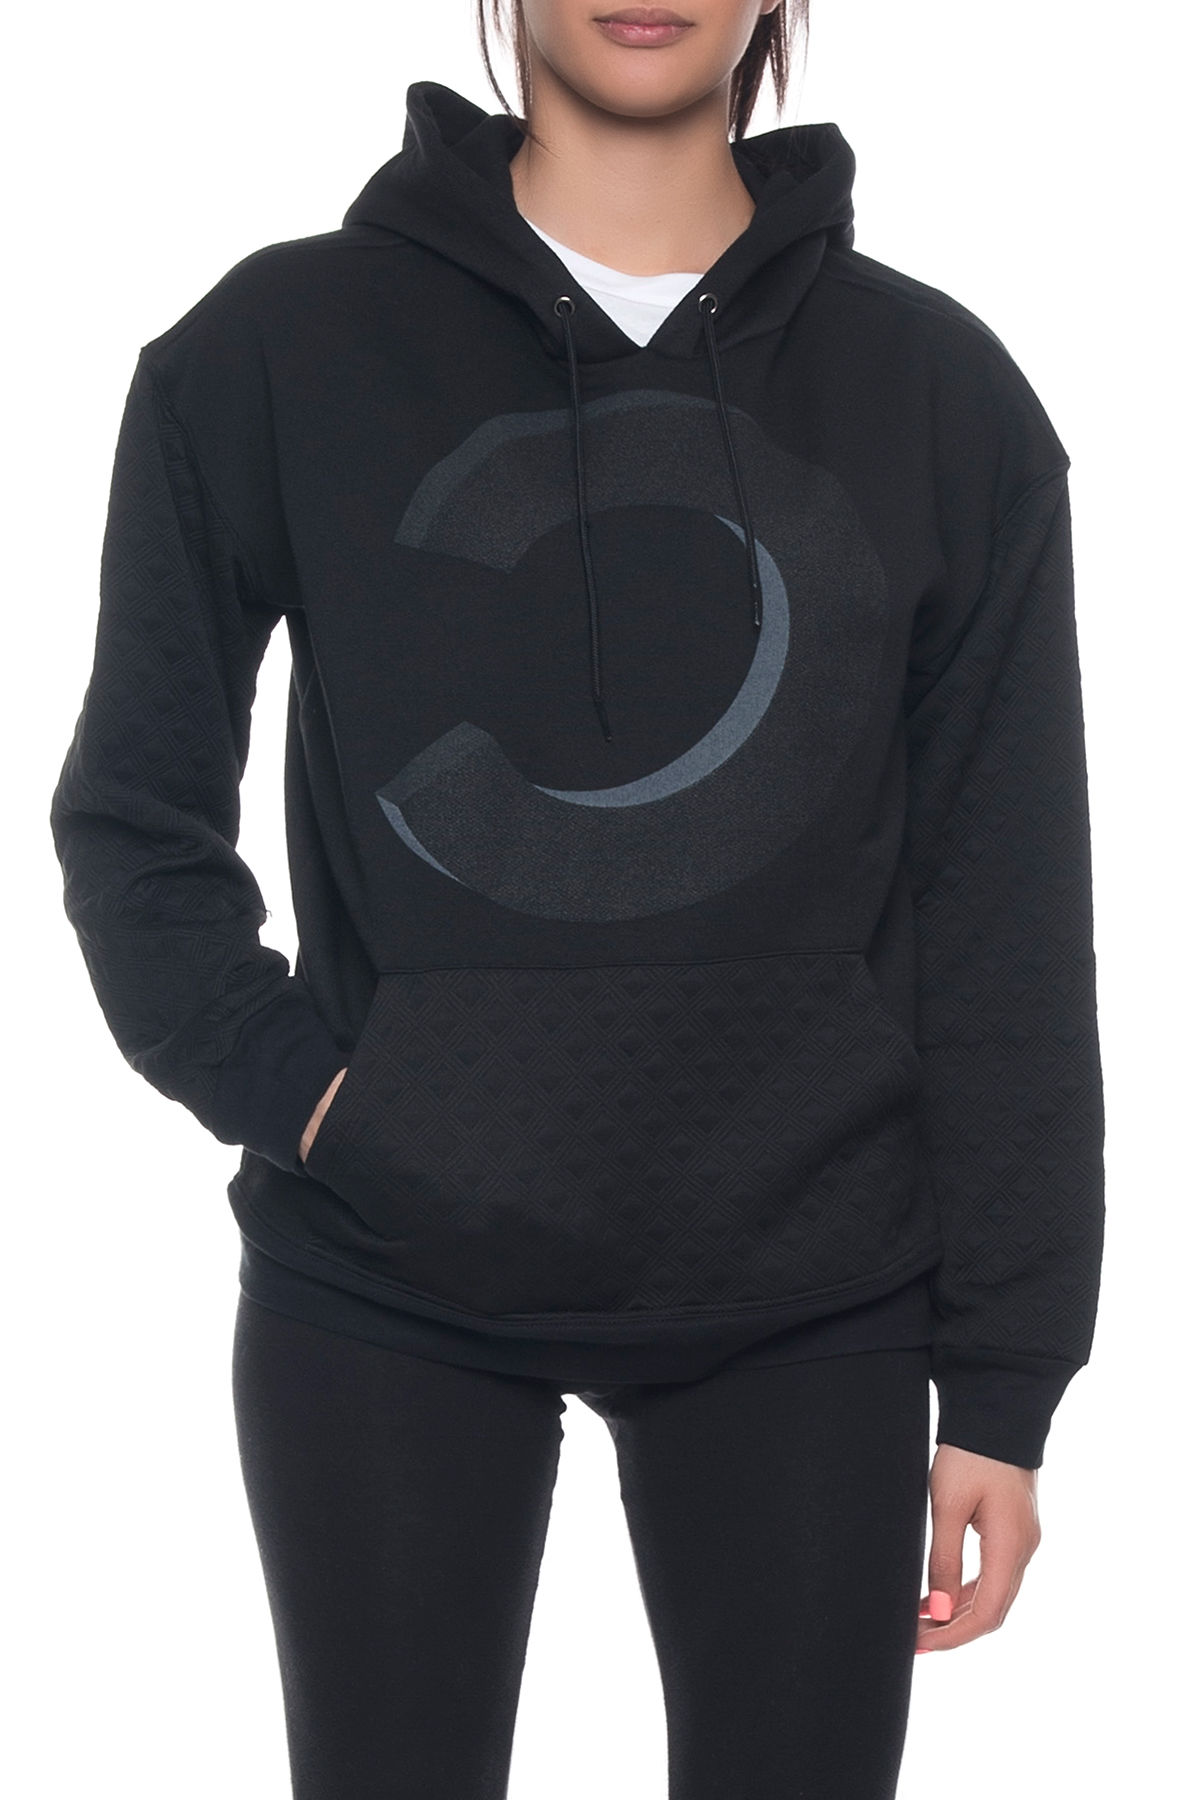 Image of The C Dimensional Quilted Hoodie in Black